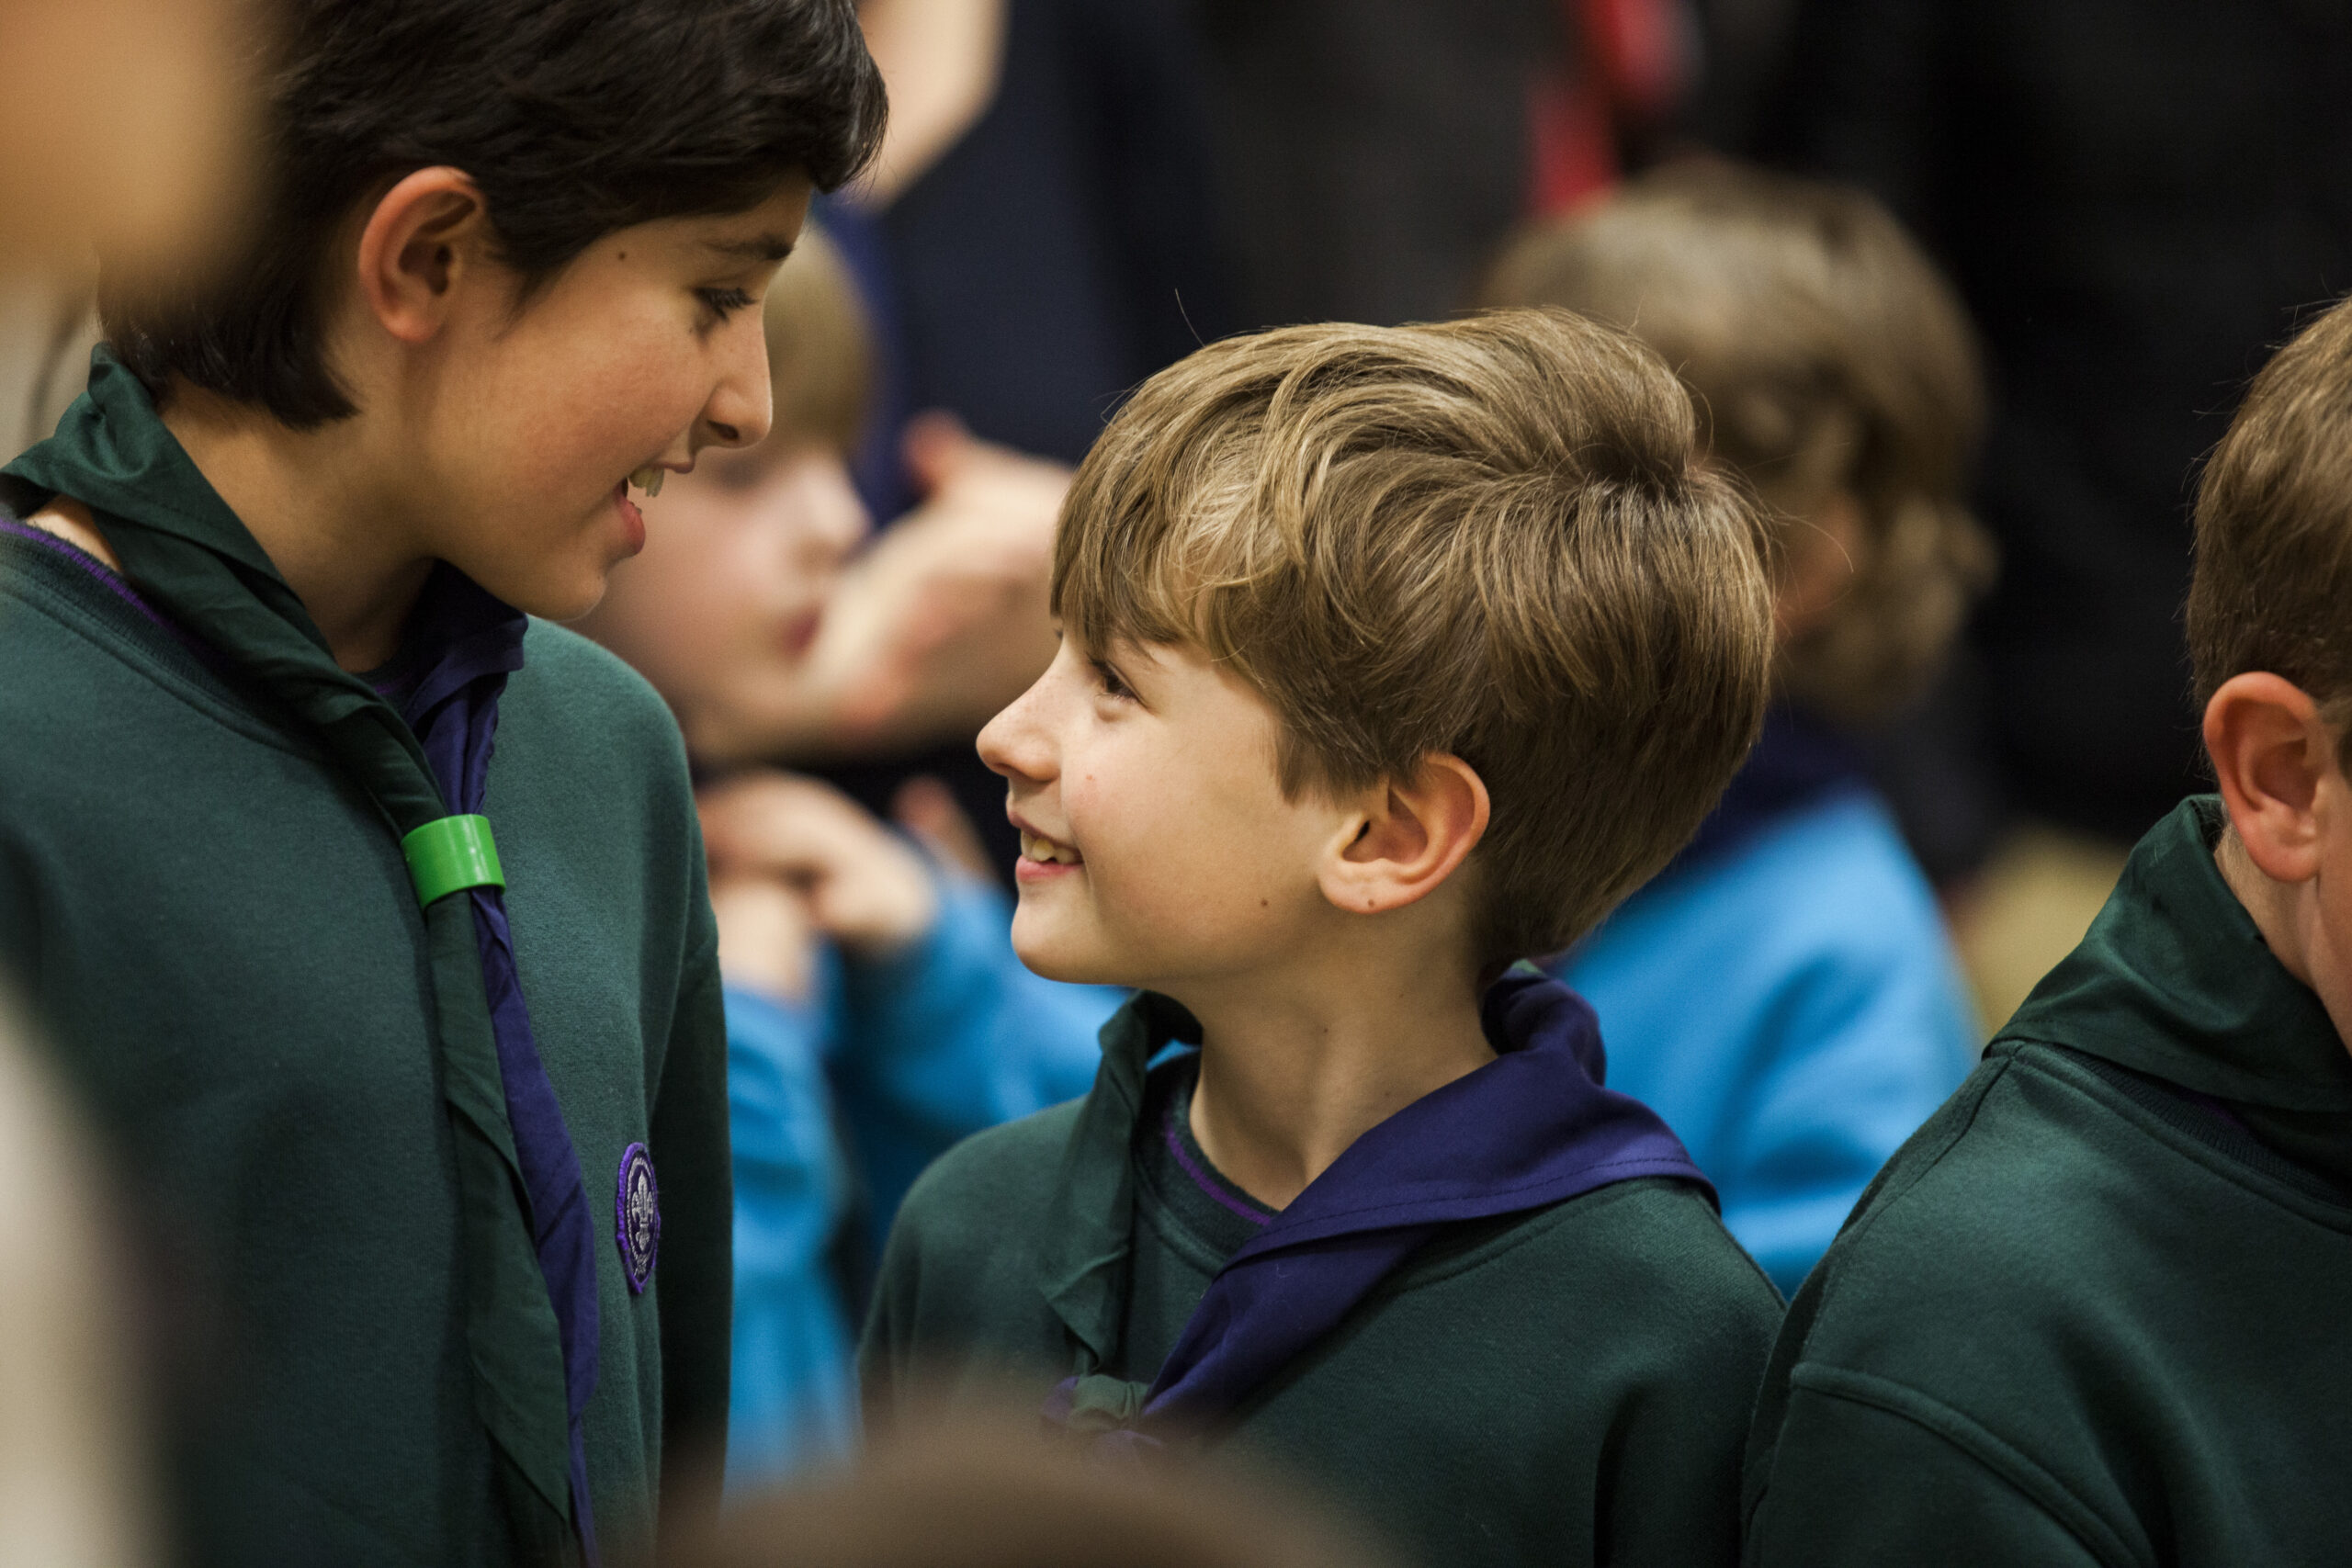 Image shows two Cub Scouts chatting